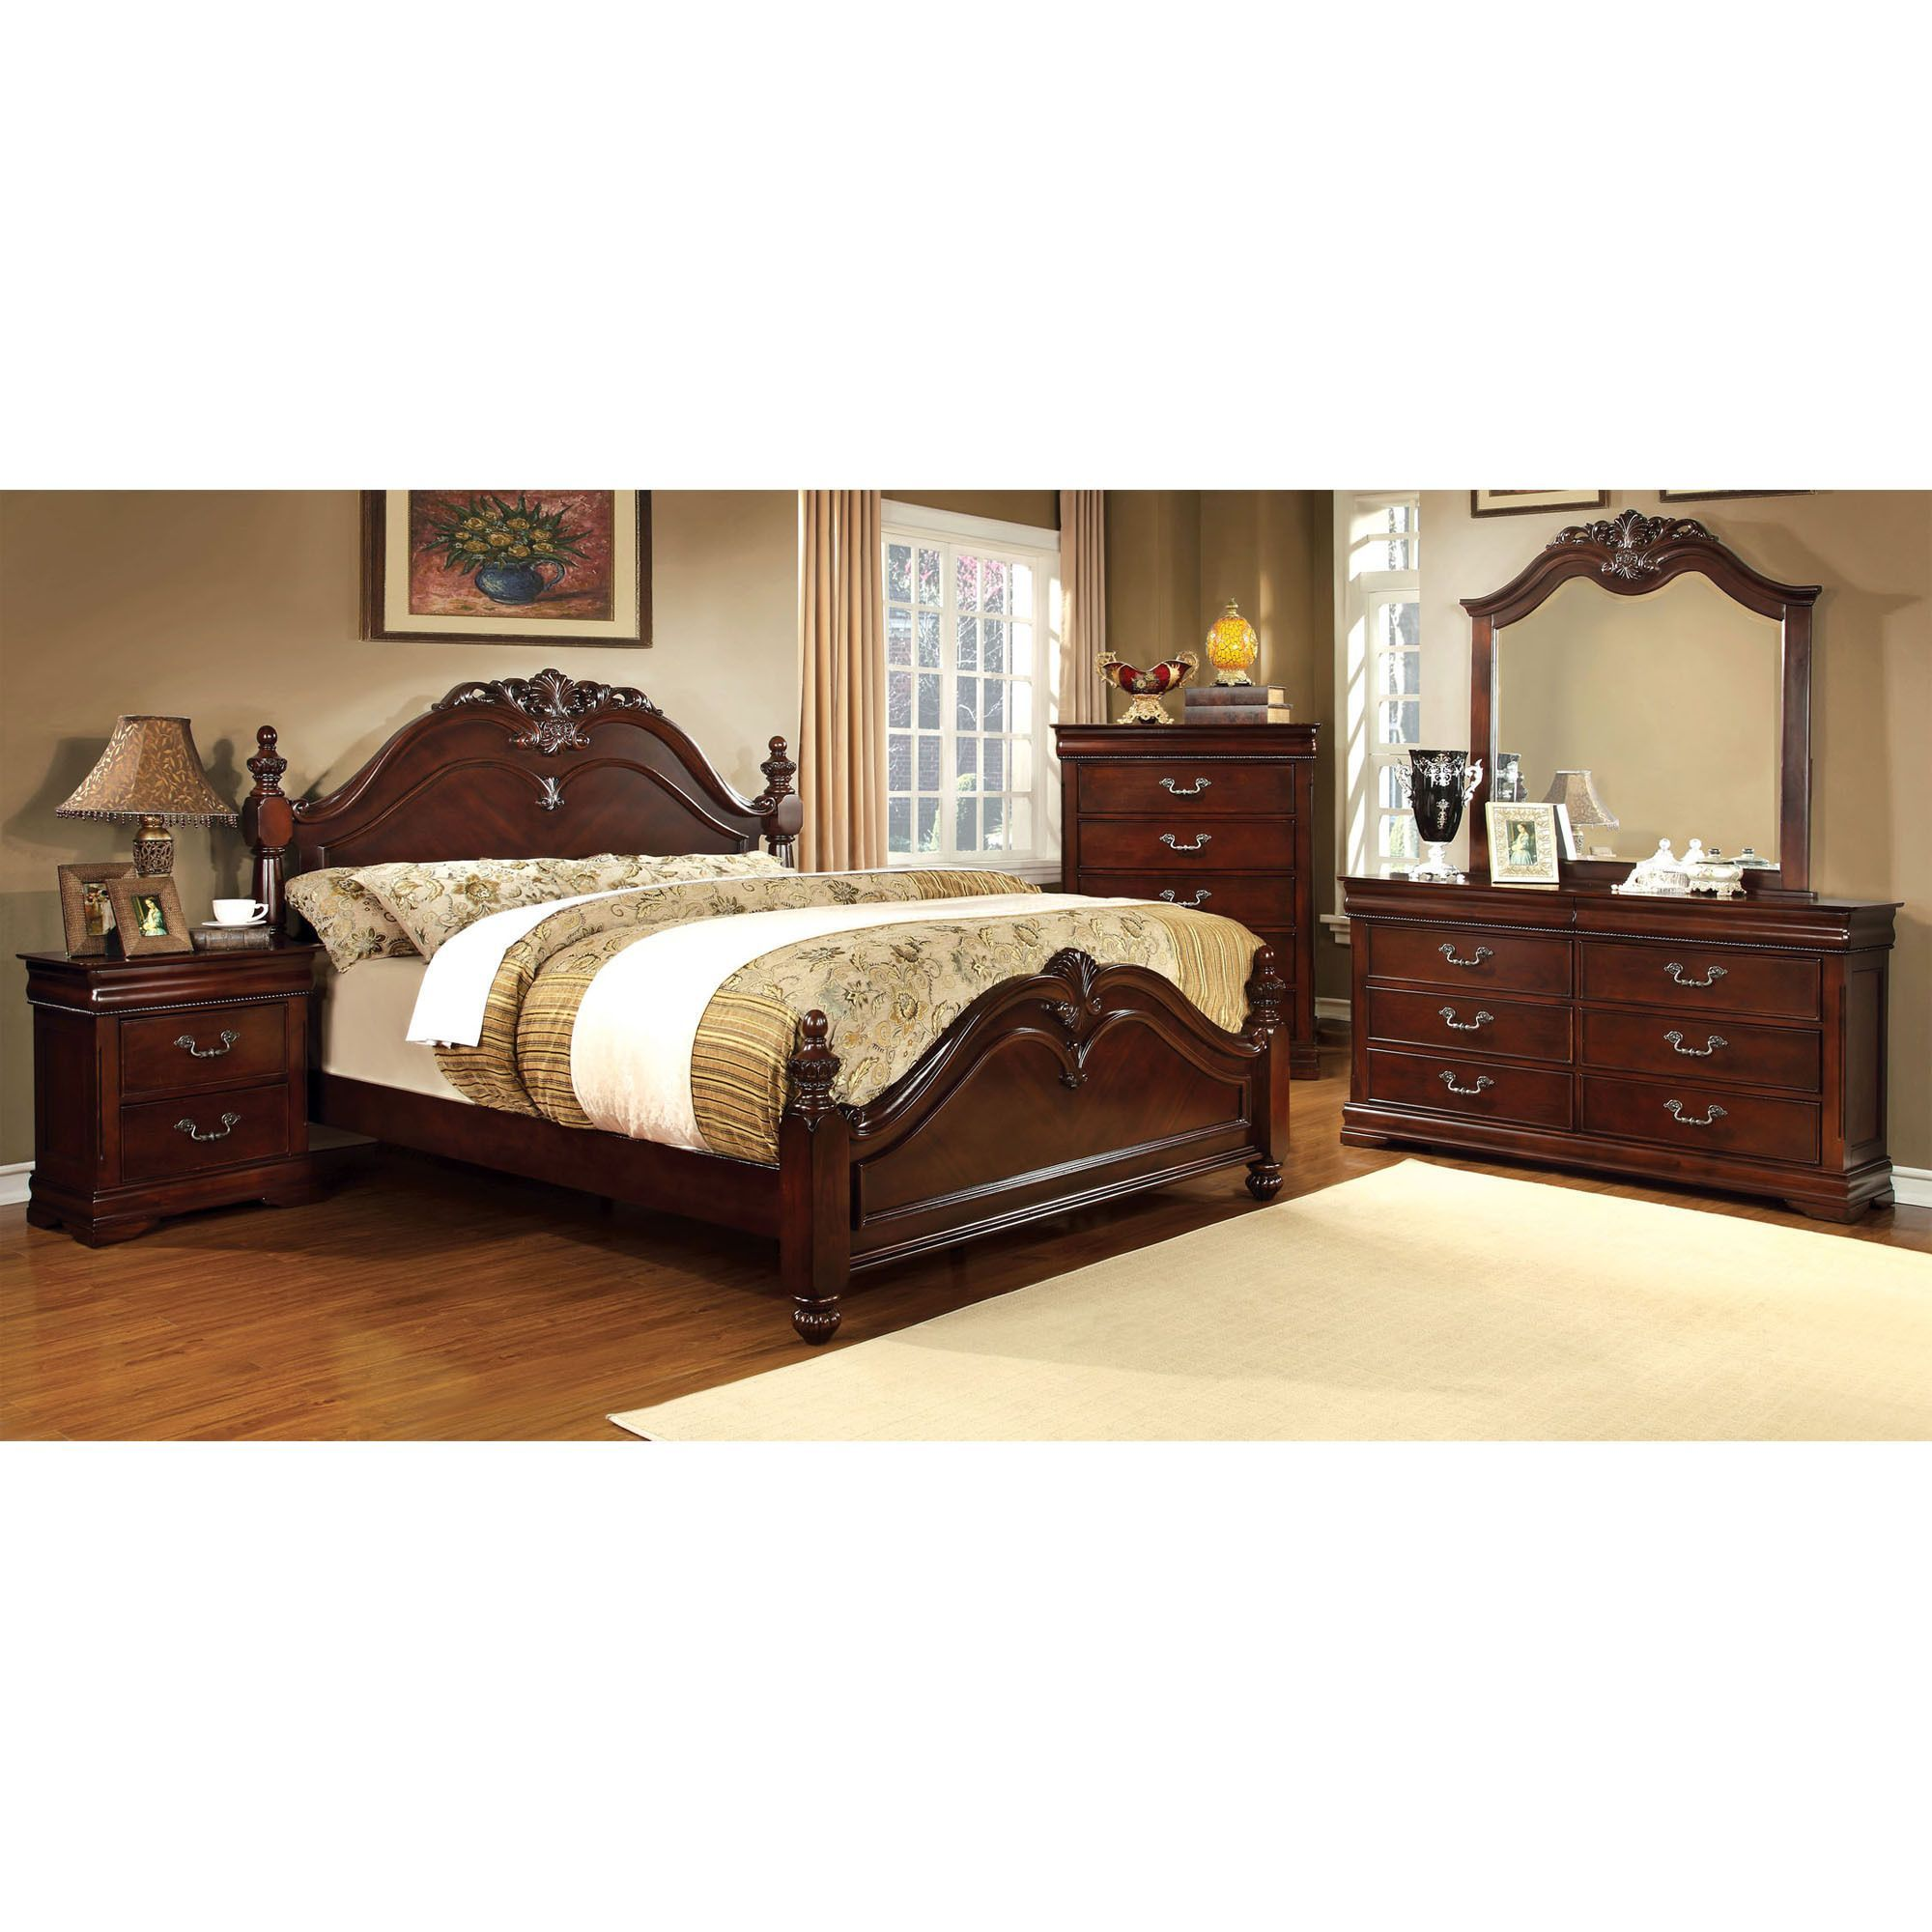 Furniture Of America Bastillina English Style 4 Piece Cherry Poster Bedroom  Set   Overstock Shopping